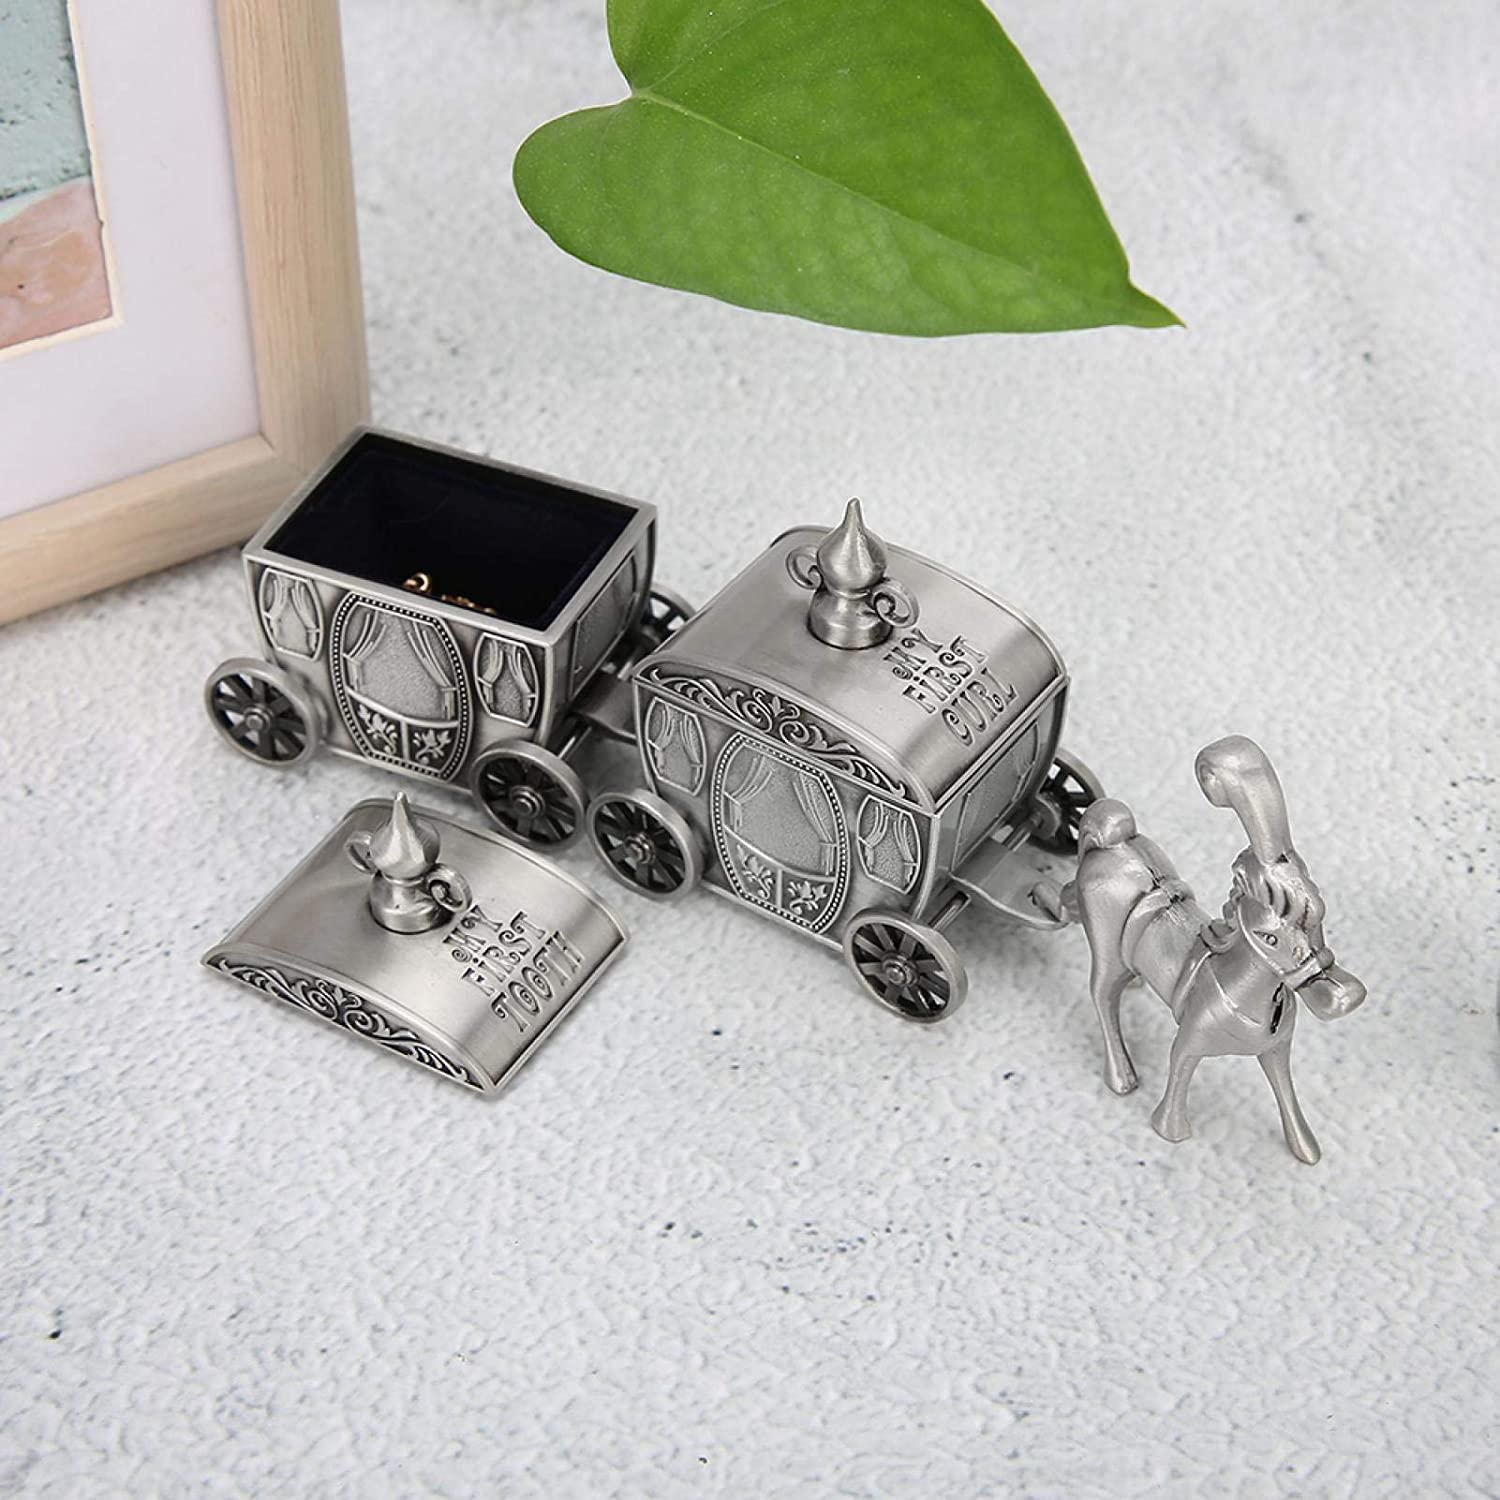 Vintage Baby Keepsake Box First Tooth Memory Box Tooth Keepsake Box Treasure Box Tooth Holder for Kids Carriage Tooth Fairy Box